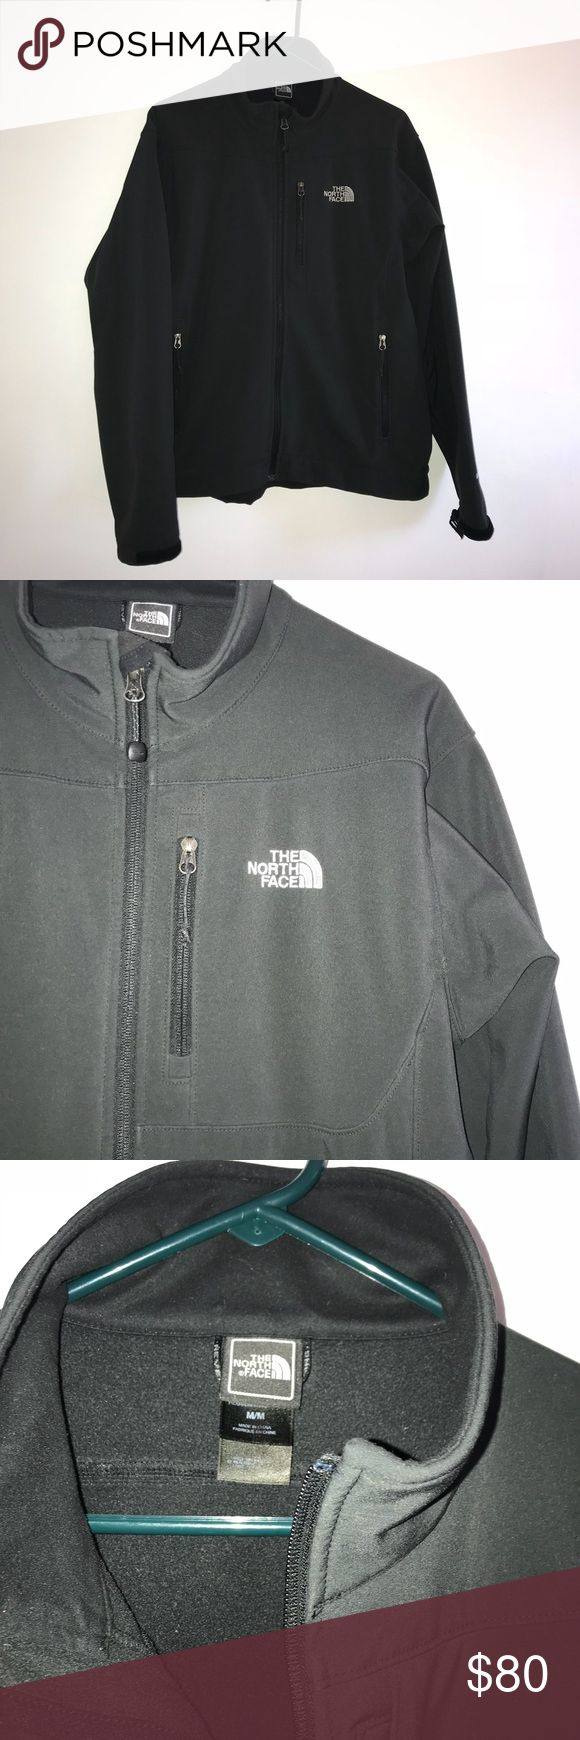 """Men's North Face Jacket Barely worn men's North Face windbreaker/rain jacket lined in fleece. Excellent condition. All zippers work, no stains or tears. Shoulder width is about 20"""". The North Face Jackets & Coats Raincoats"""